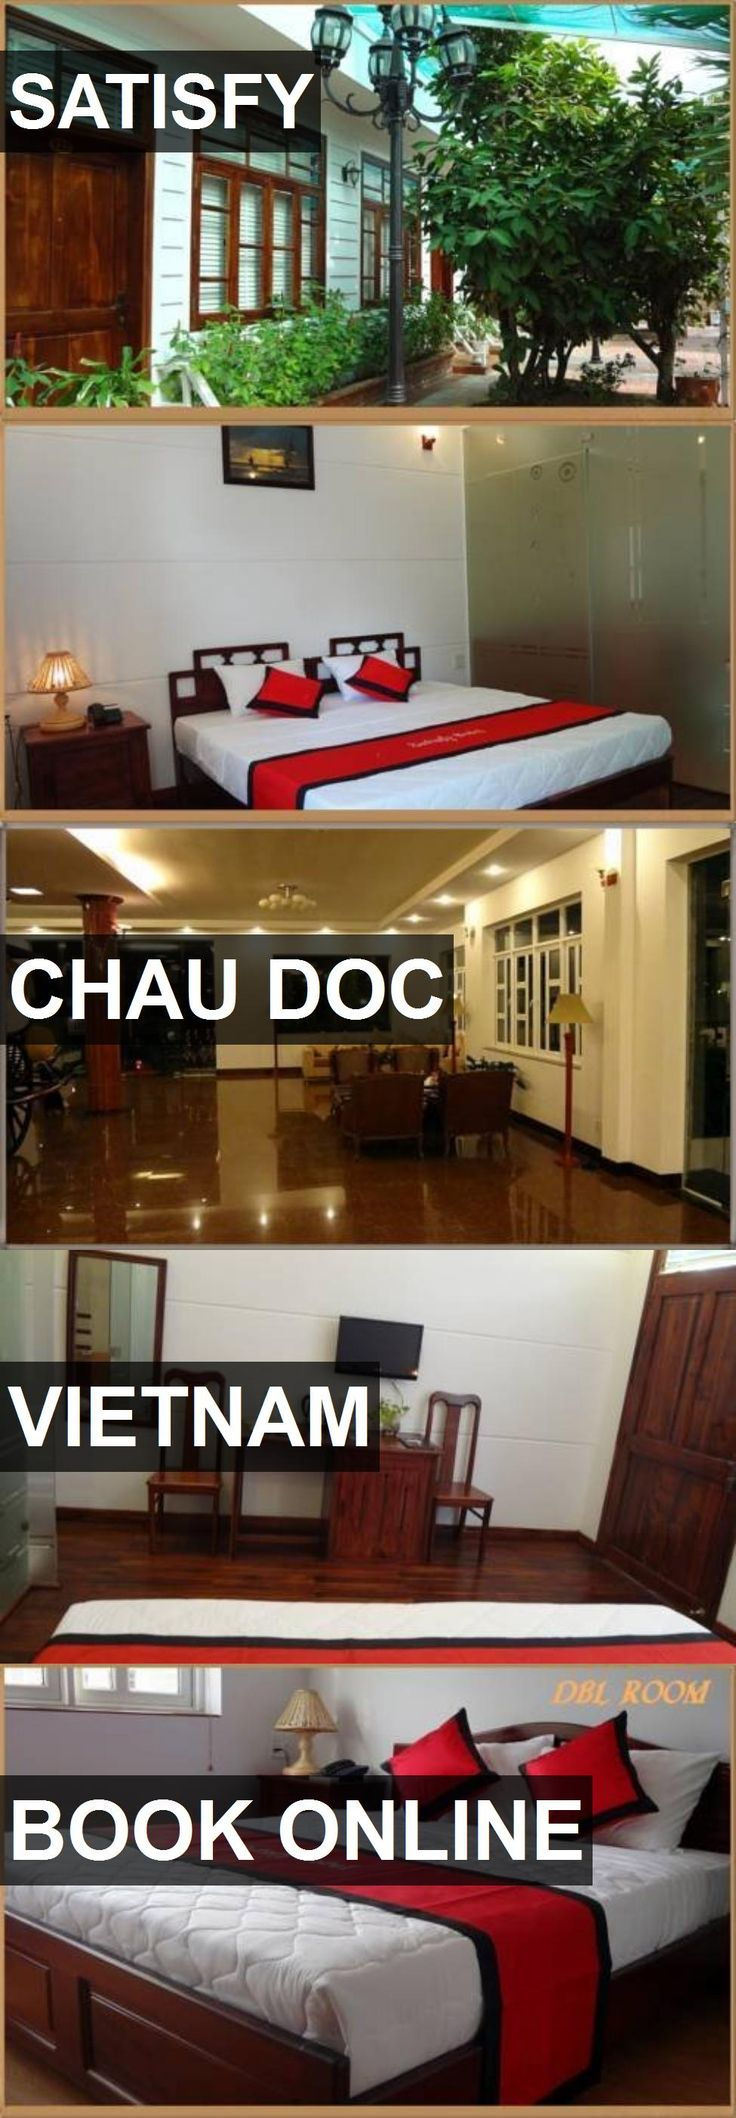 Hotel SATISFY in Chau Doc, Vietnam. For more information, photos, reviews and best prices please follow the link. #Vietnam #ChauDoc #travel #vacation #hotel